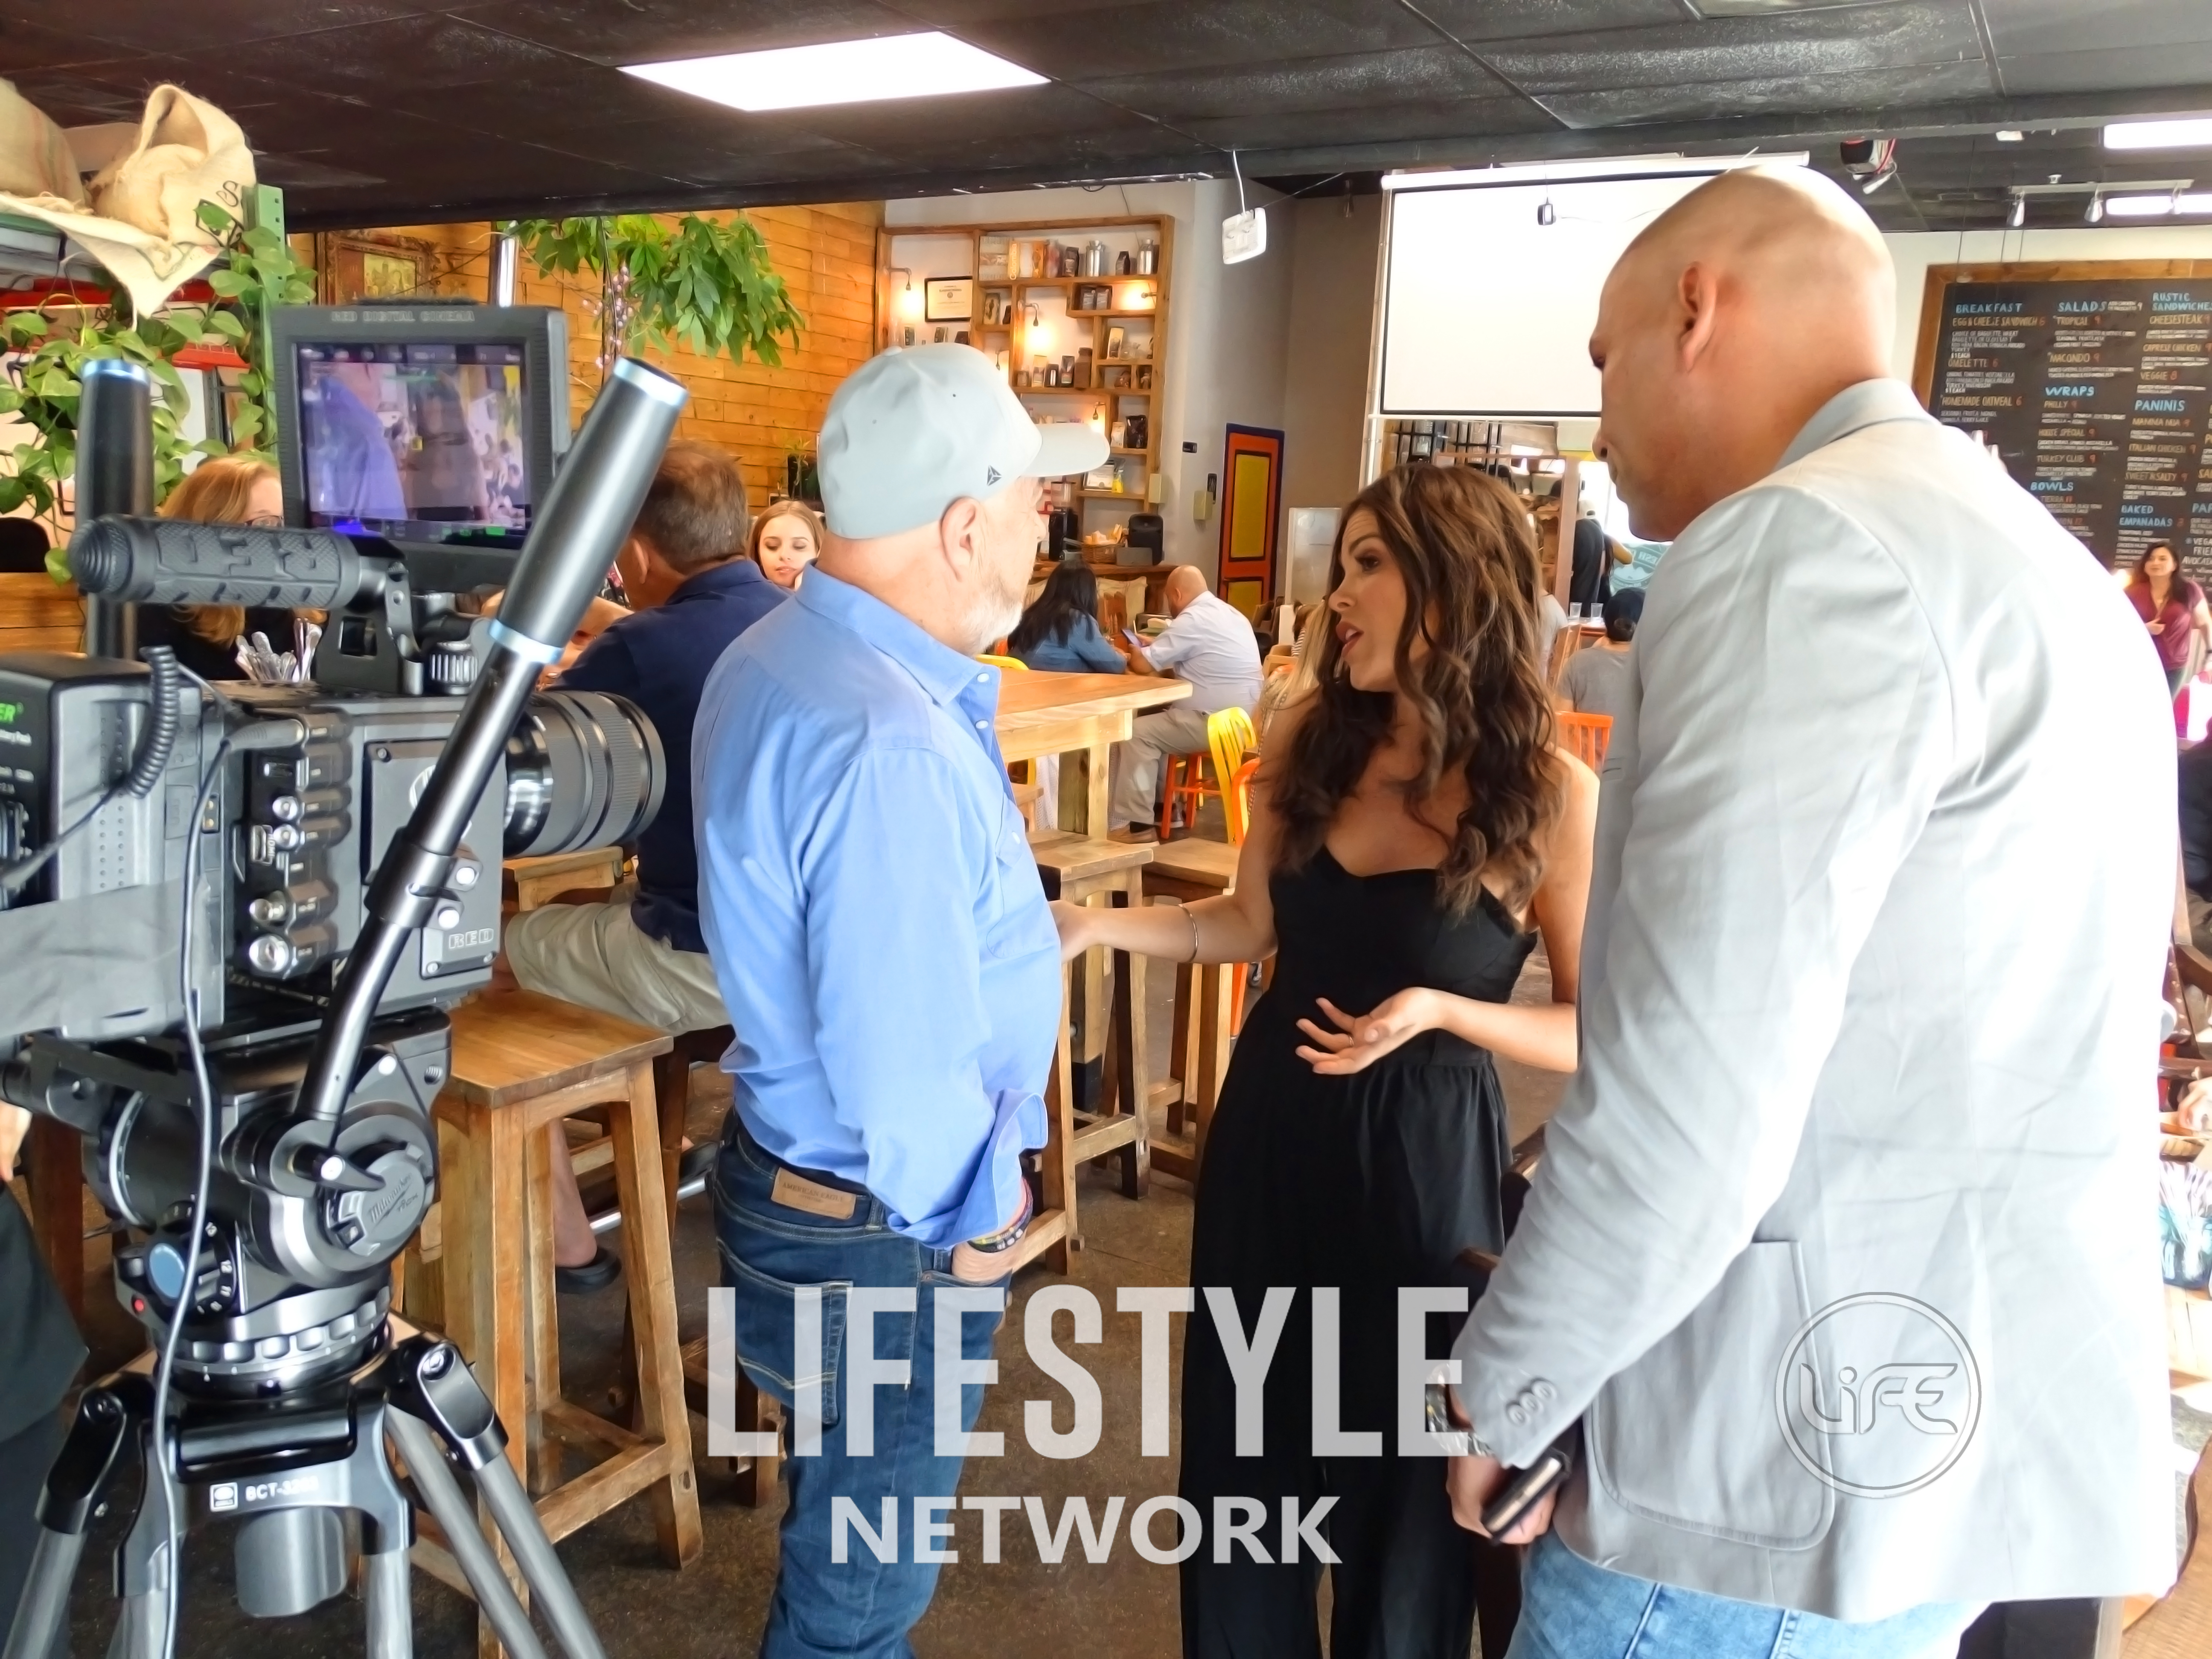 TELEVISION PRODUCER ALAA HARAZIN LAUNCHES FLORIDA FOOD CRAWL ON HIS OWN TV NETWORK